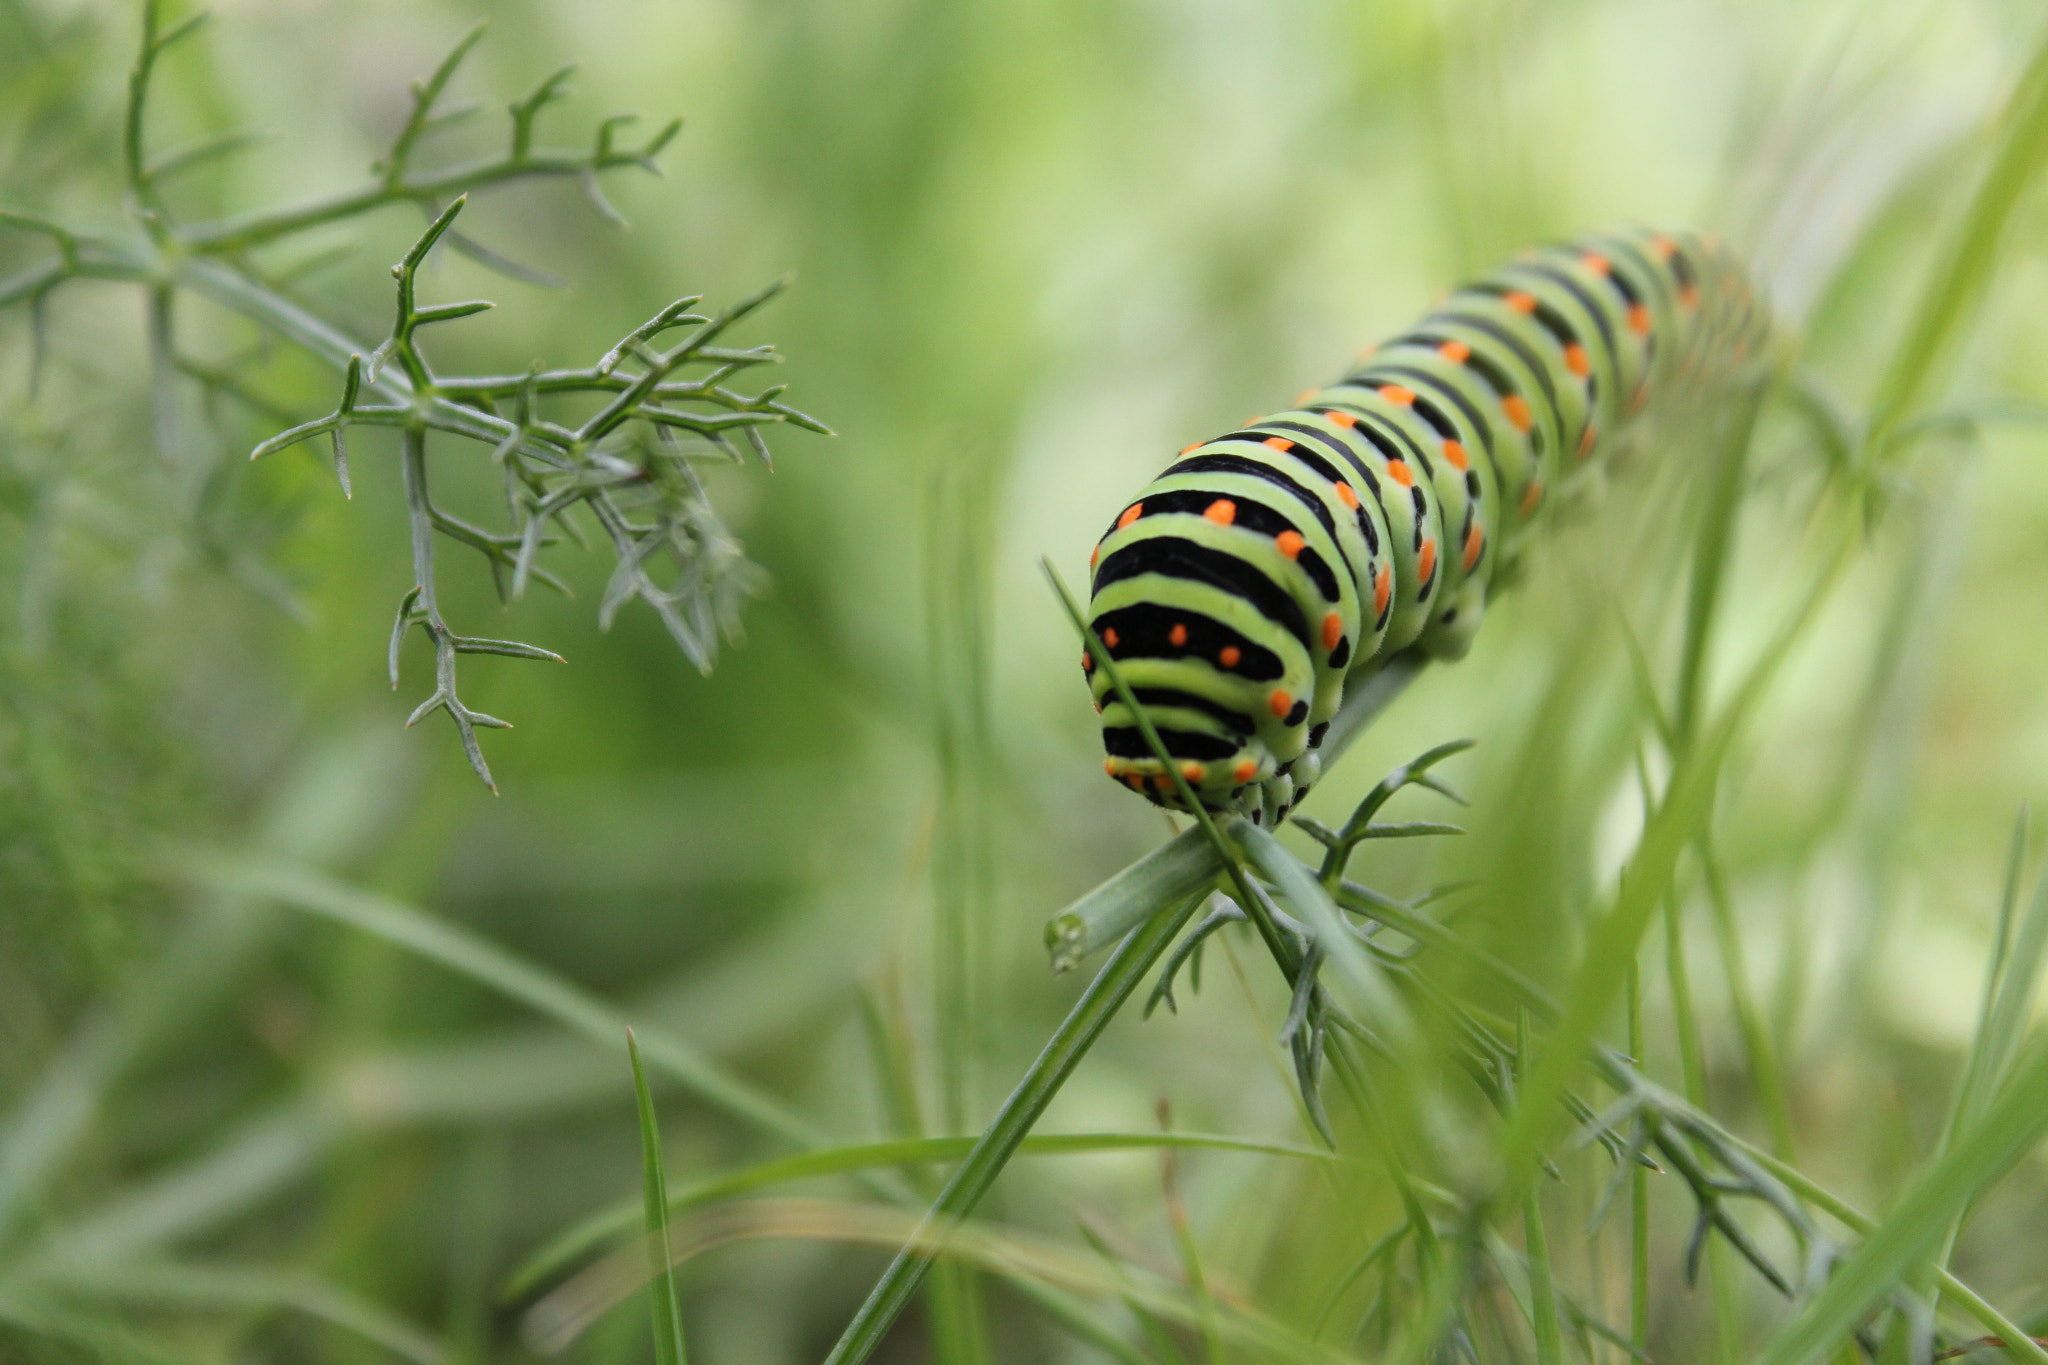 Photograph Caterpillar by Victoria Rodriguez on 500px